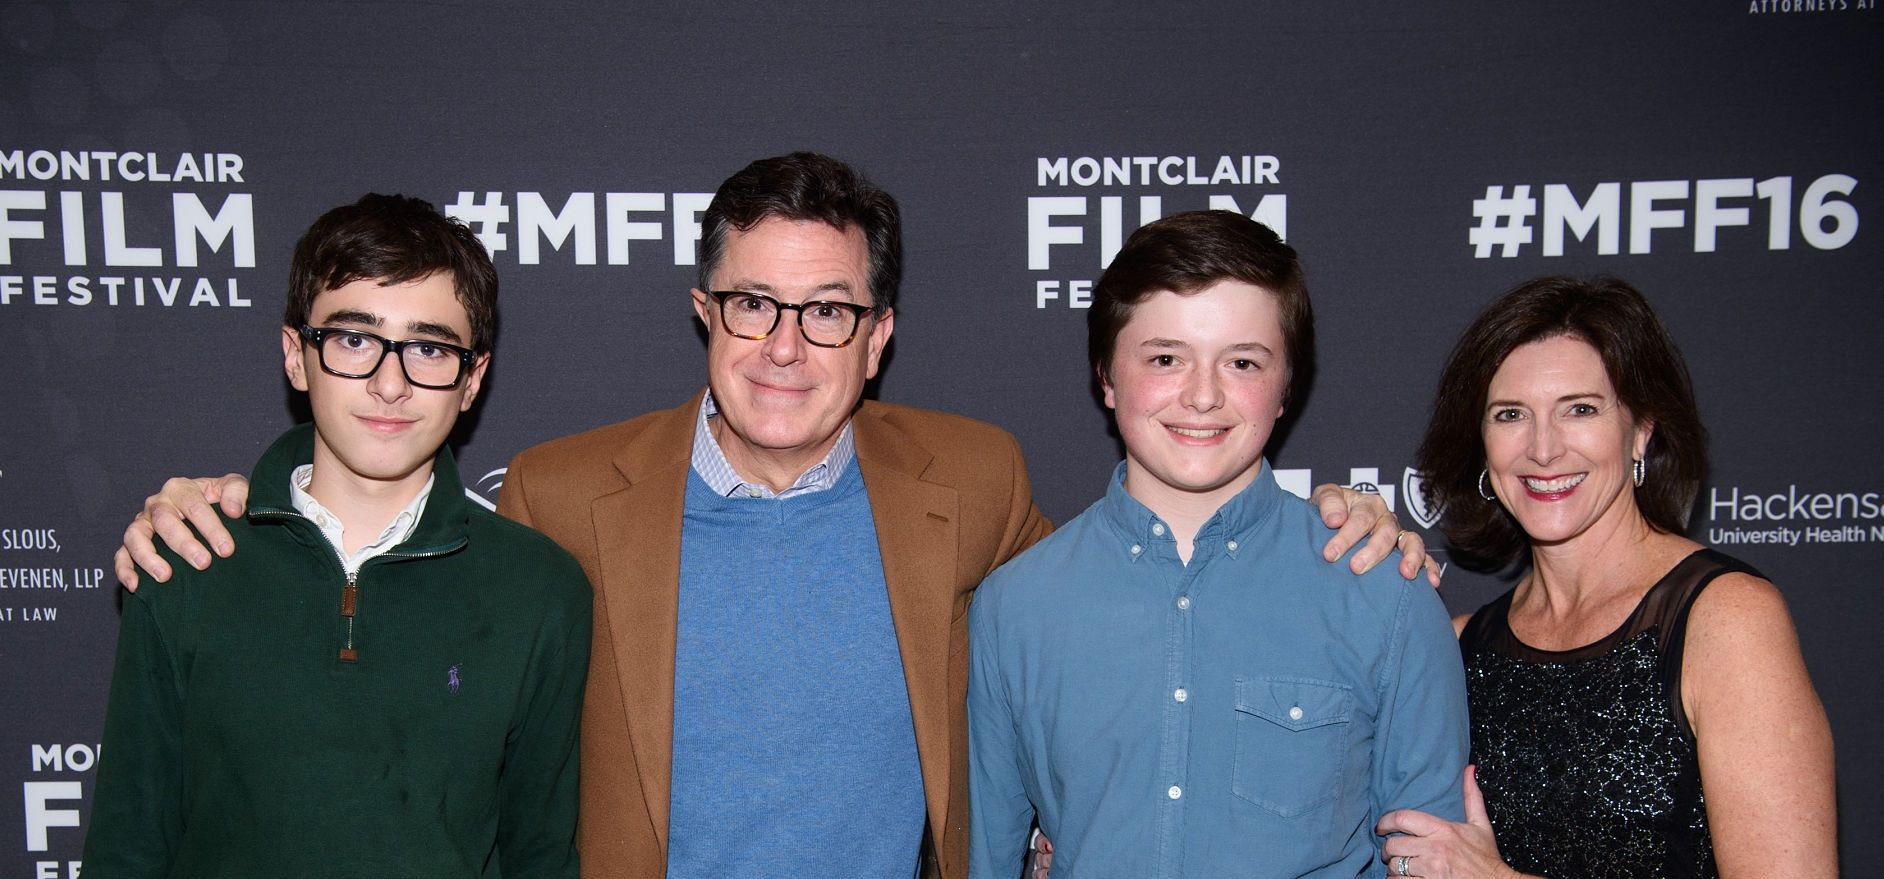 Stephen Colbert and family